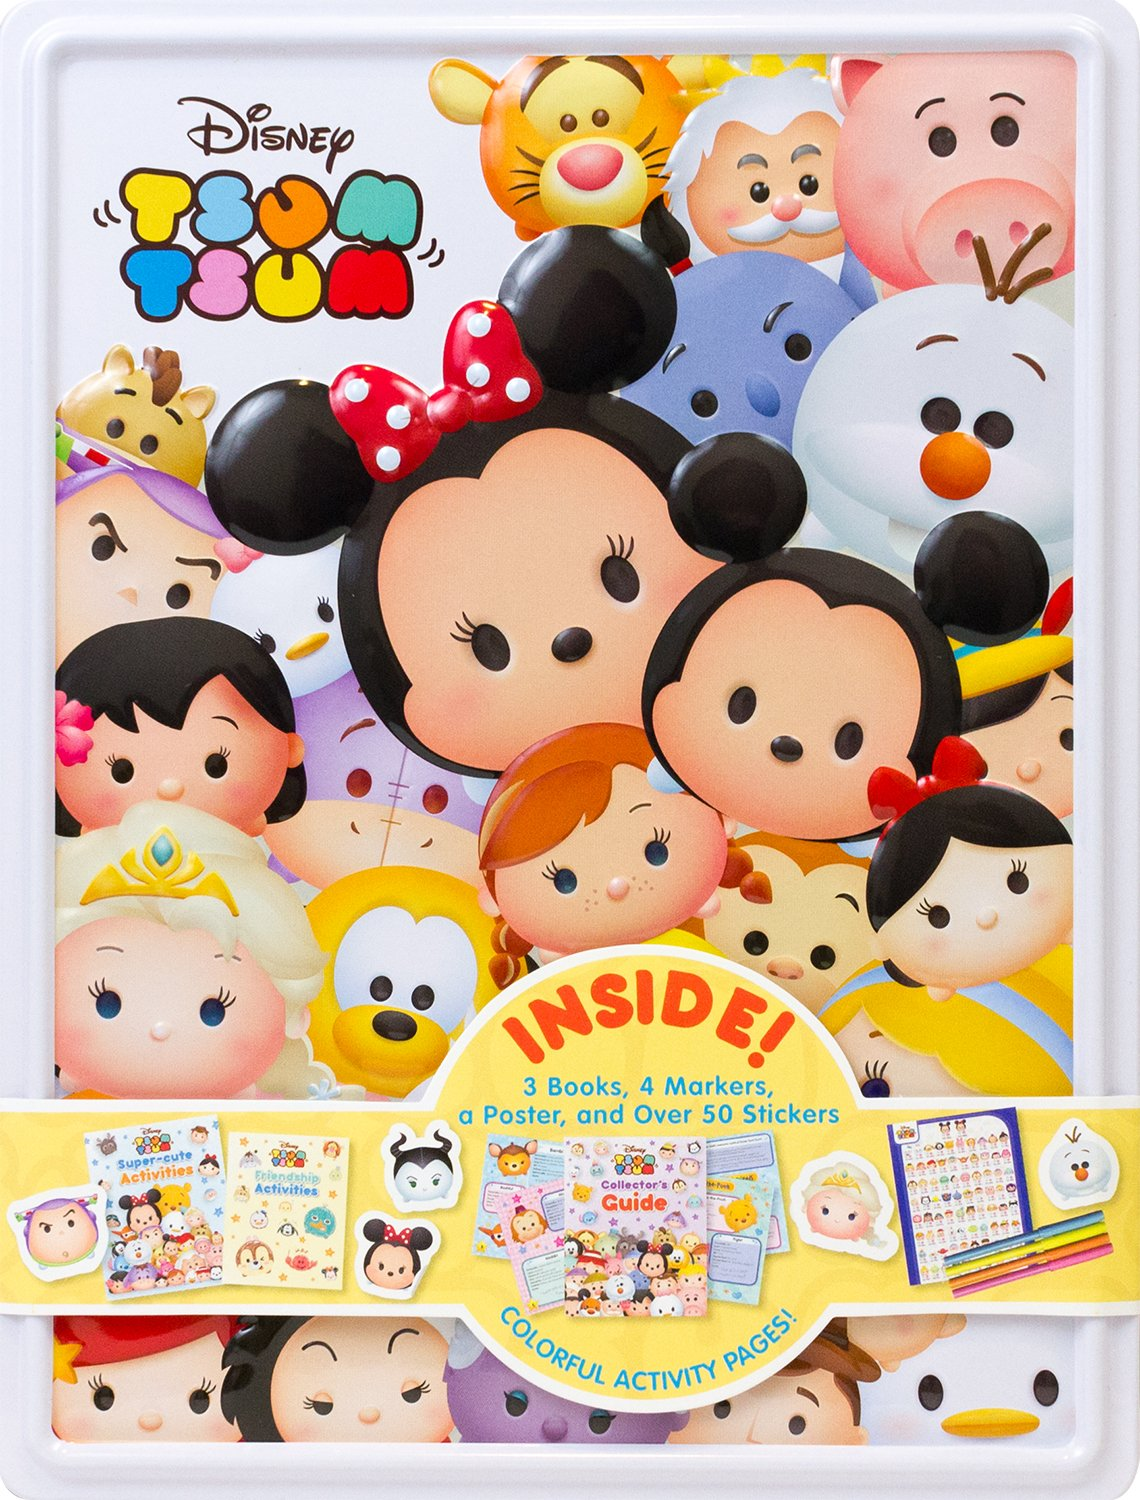 Disney Tsum Happy Tin Parragon Books Ltd 9781474859837 Amazon